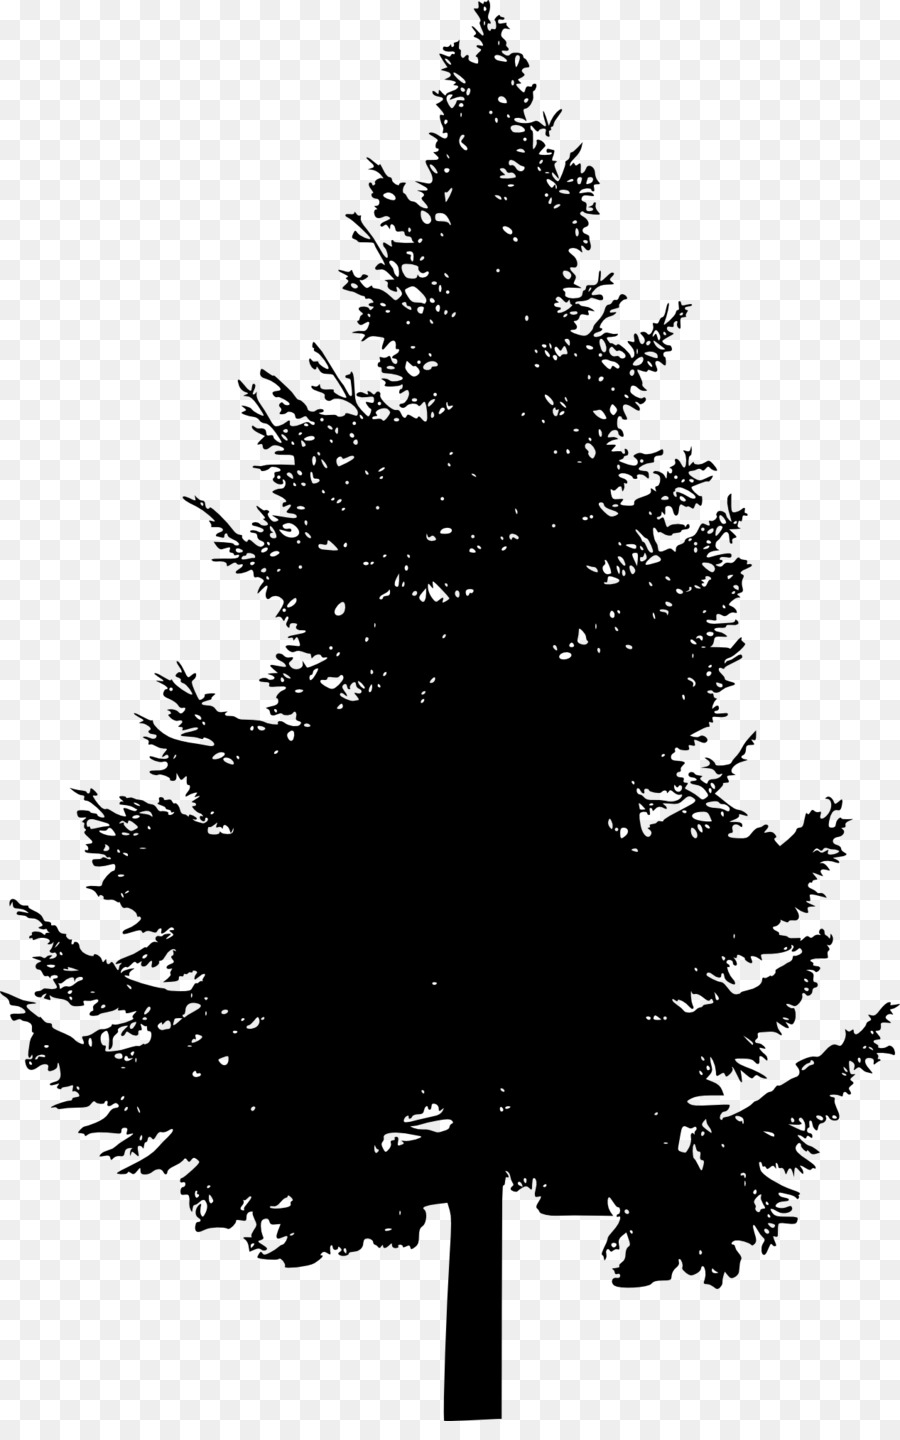 Pine Tree Silhouette Clip Art Pine Tree Png Download 1267 2000